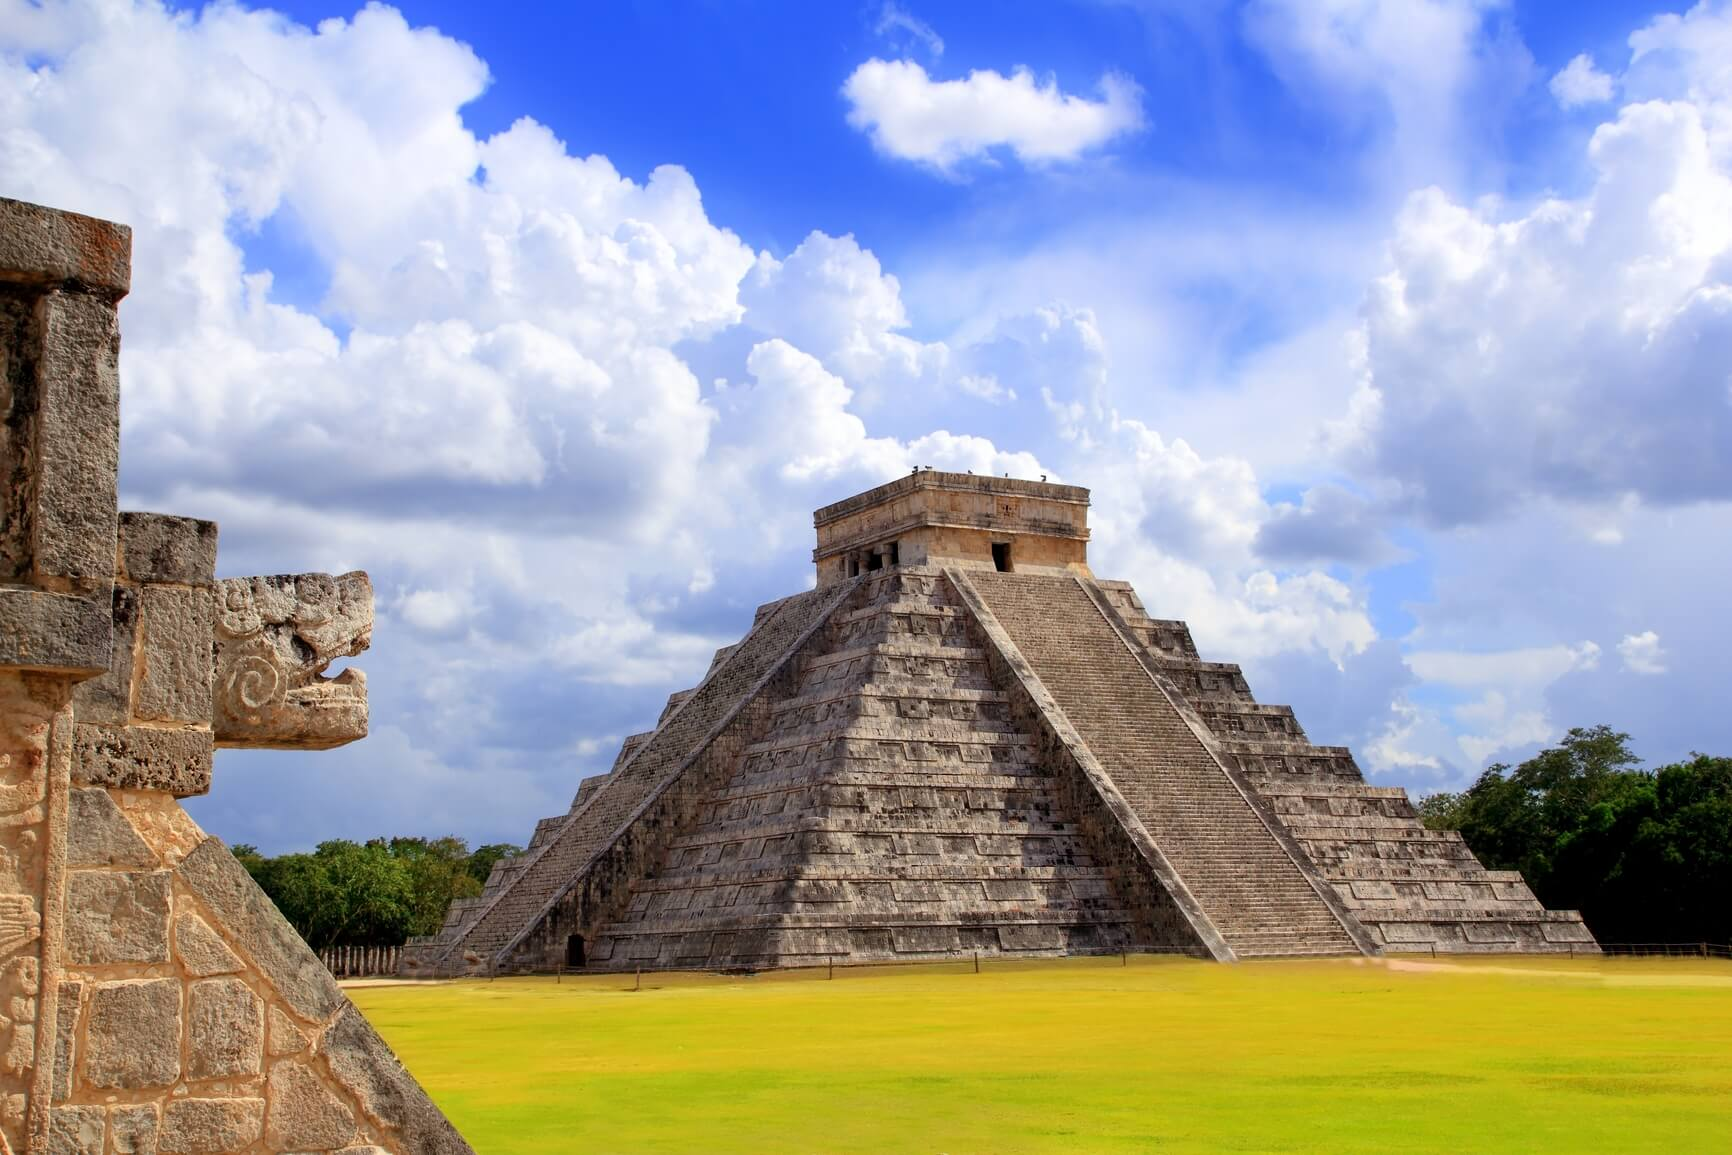 Berlin, Germany to Cancun, Mexico for only €378 roundtrip (Jan-May dates)